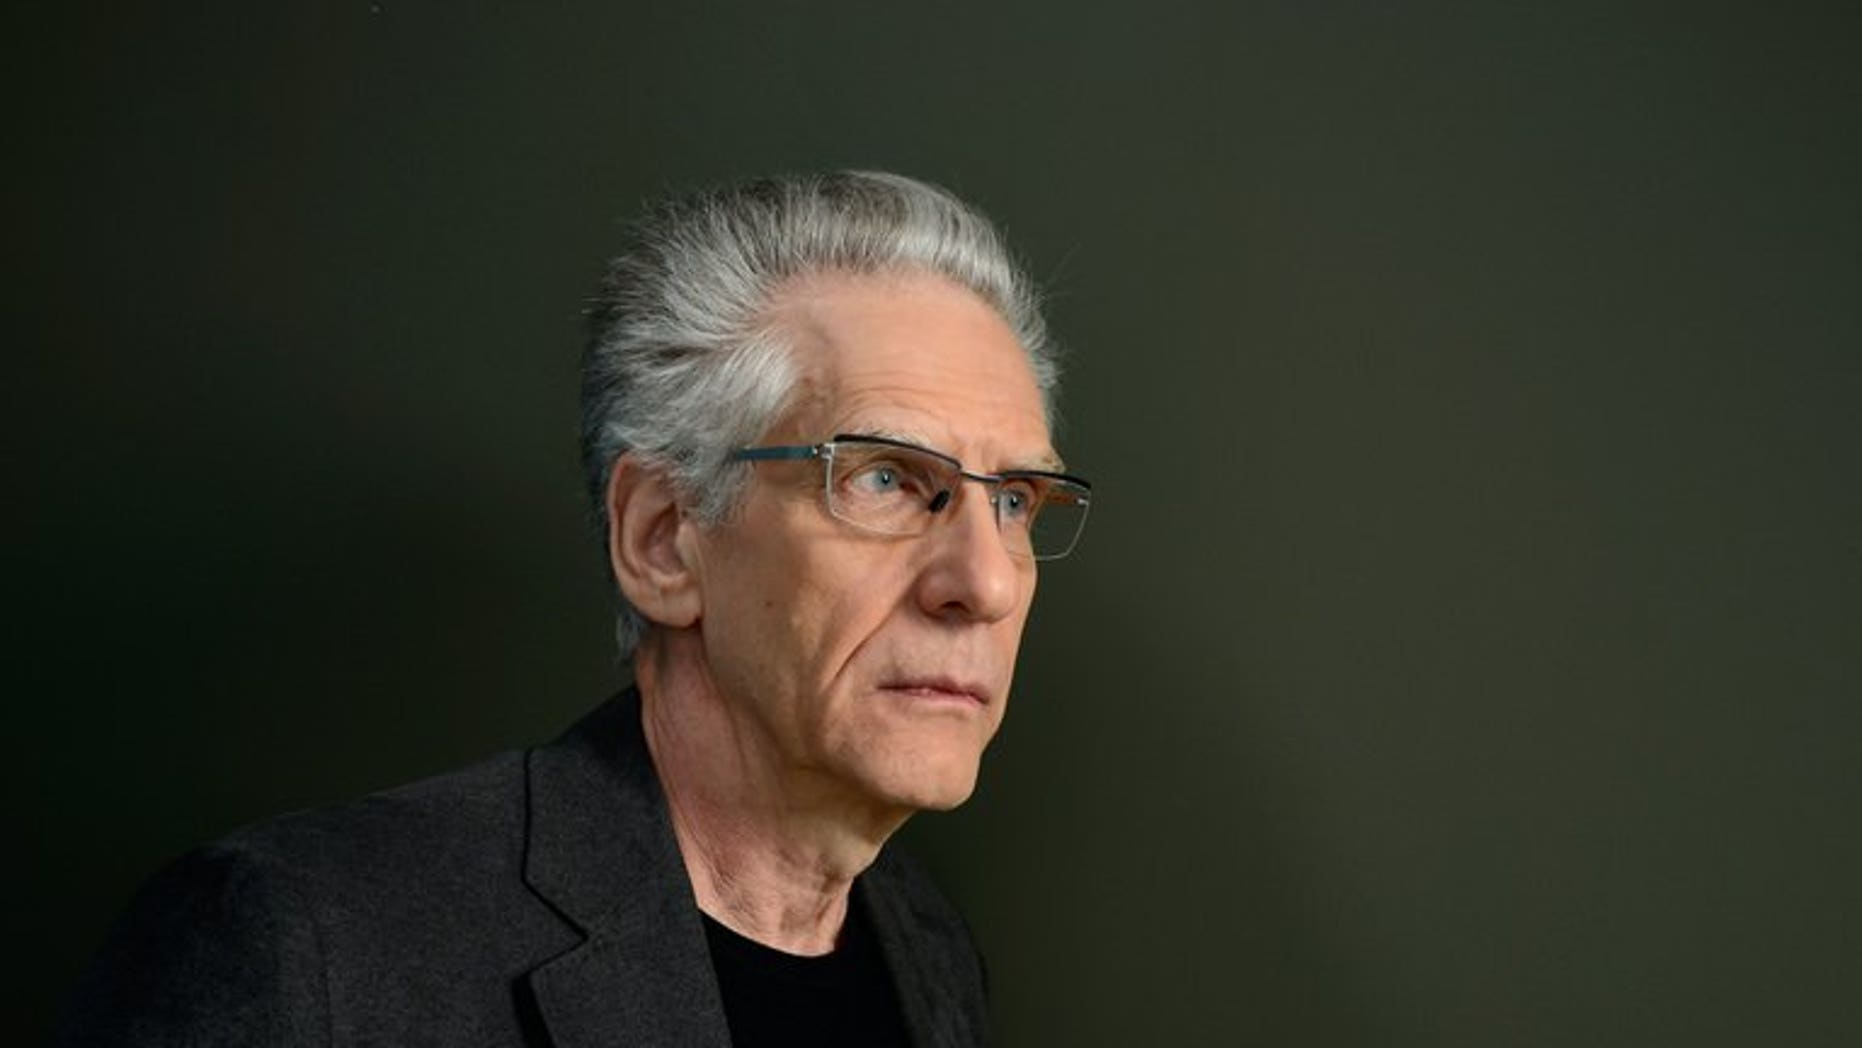 """Director David Cronenberg poses at the Guess Portrait Studio during the 2013 Toronto International Film Festival on September 5, 2013 in Toronto, Canada. Life, not his films, is """"weird and strange,"""" Cronenberg said as the Toronto film festival announced a retrospective of his cold, clinical, and often gory movies."""